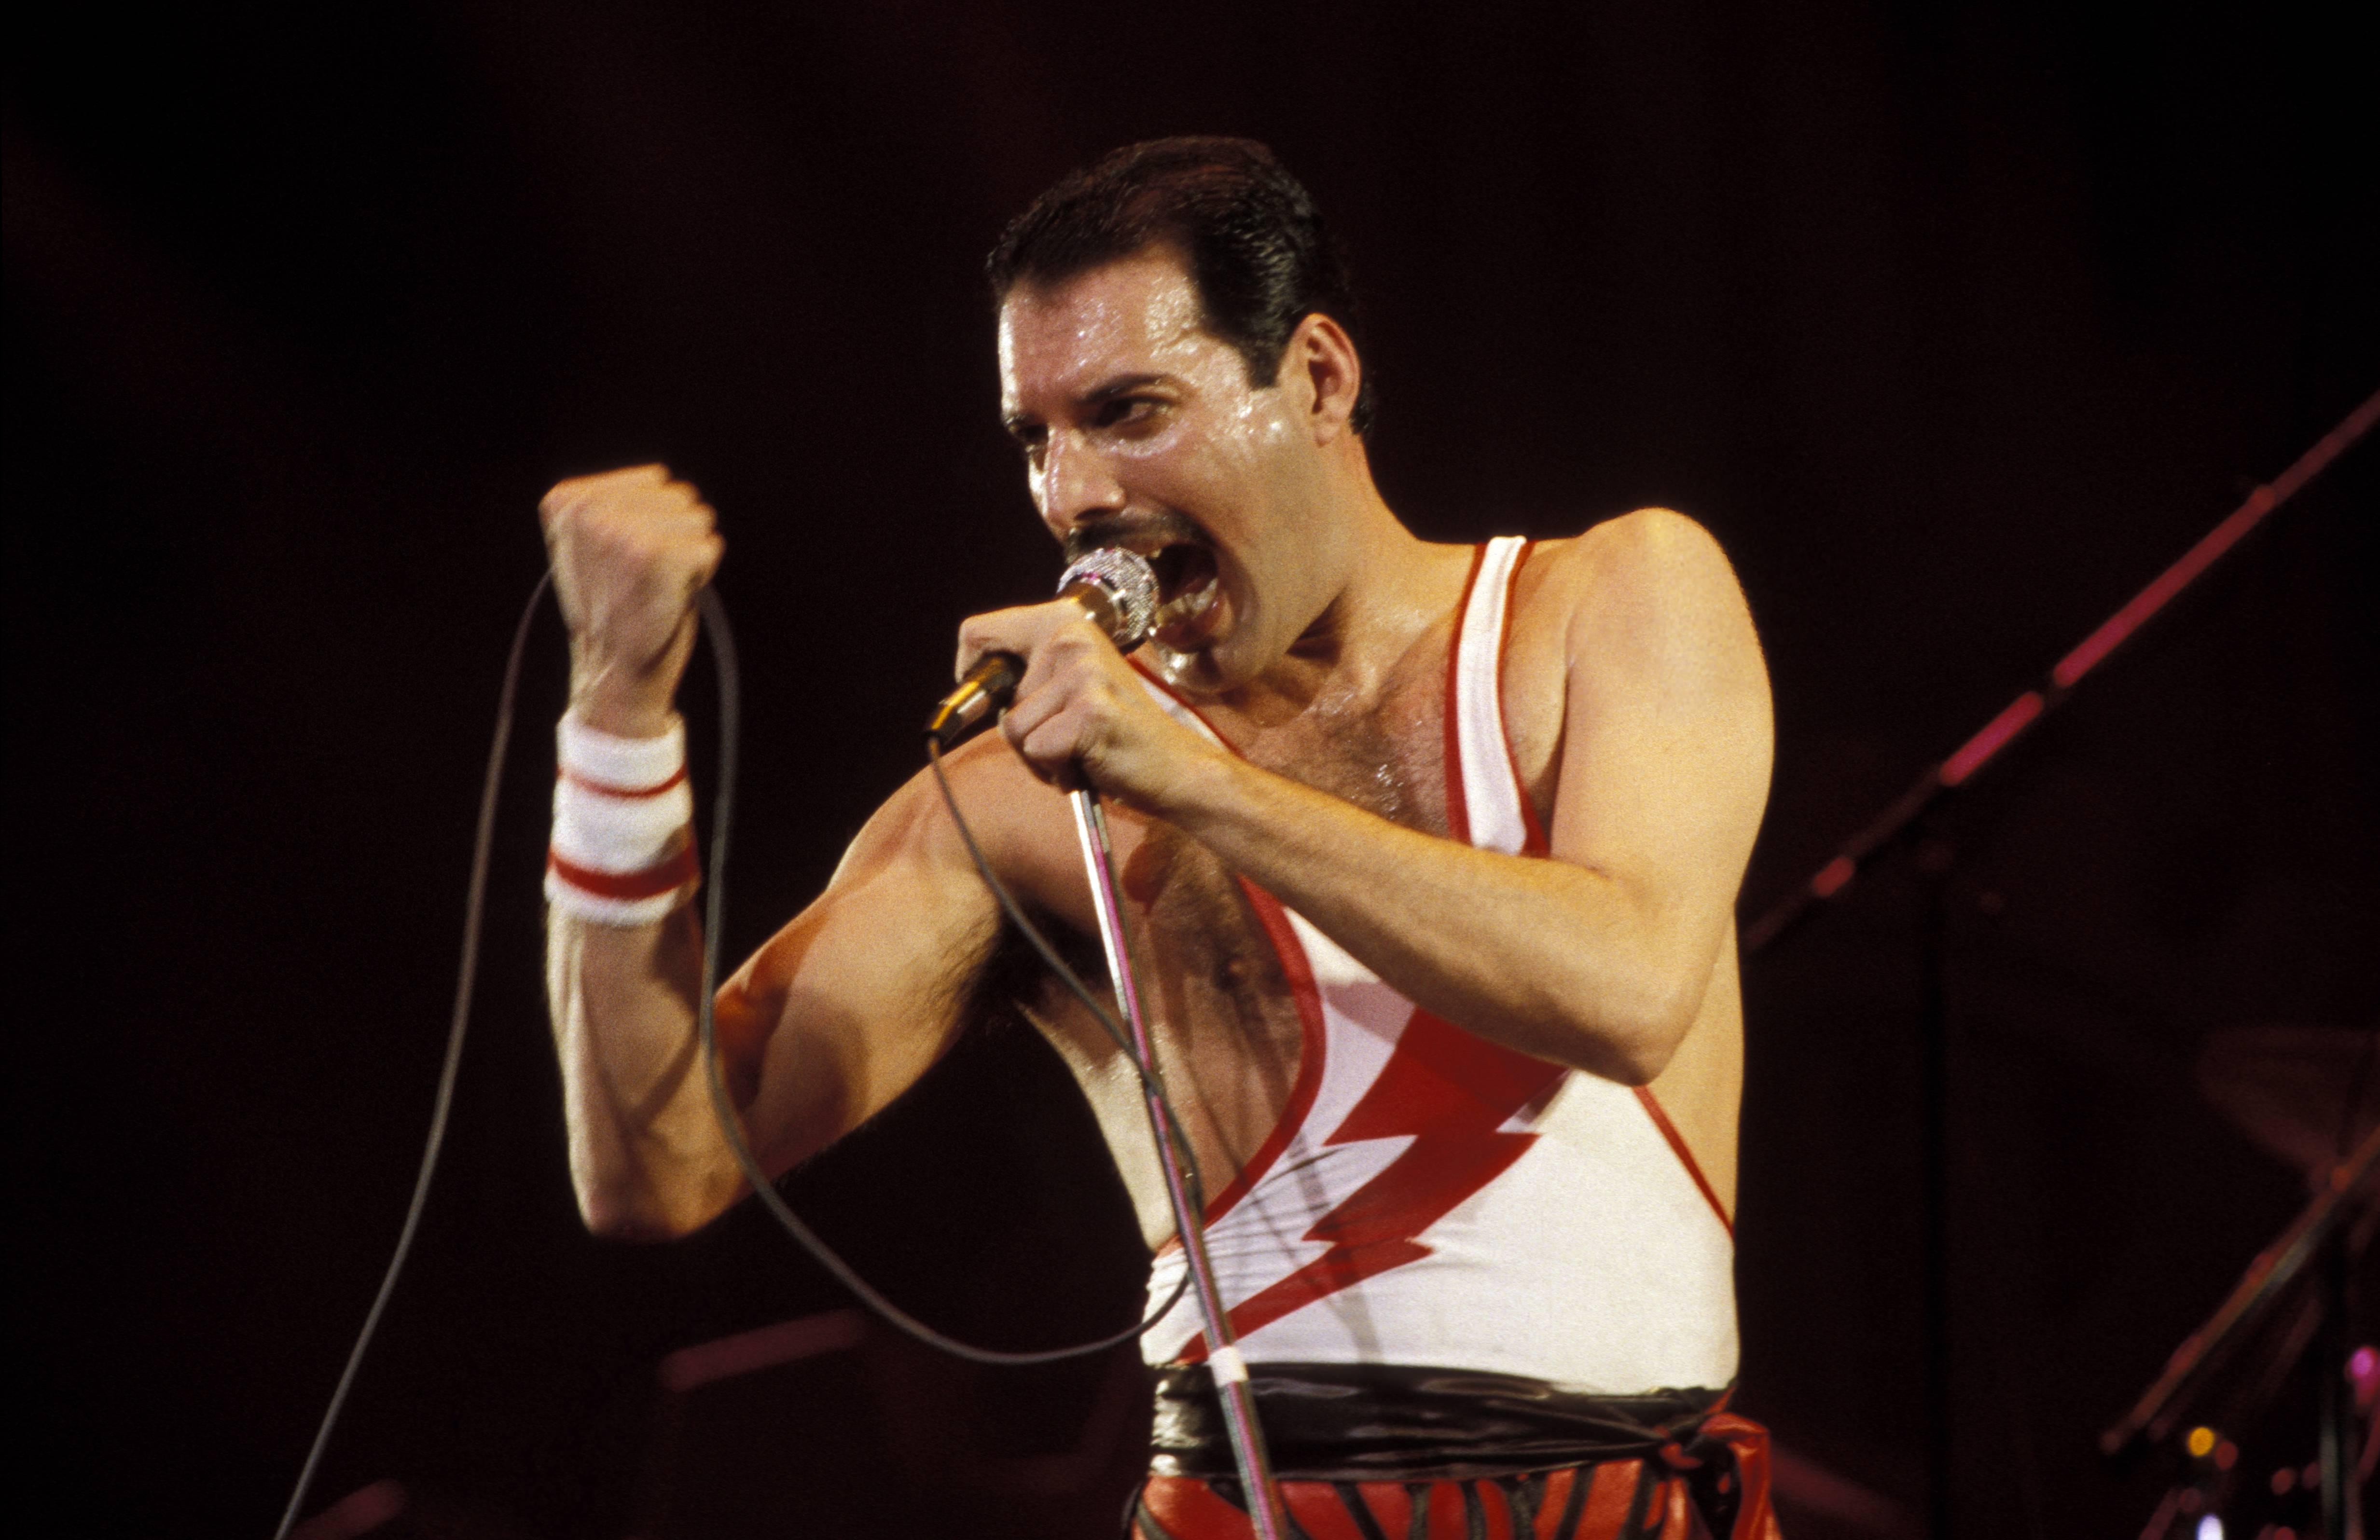 Freddie Mercury BBC Doc In The Works; Channel 4 Commits To First Black To Front Recommission; BBC Borrowing Limit Doubles– Global Briefs